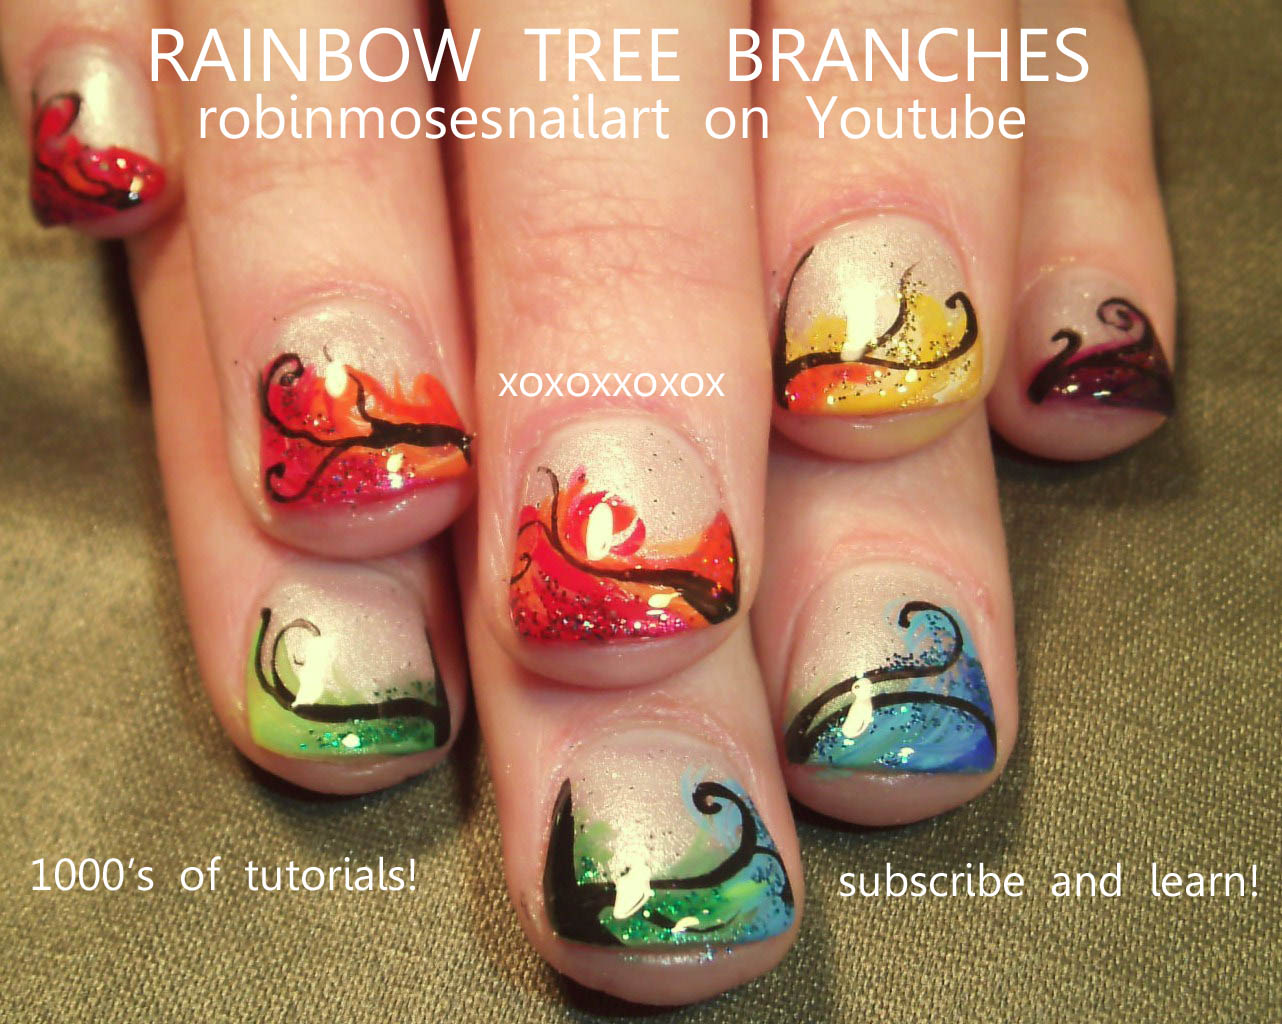 The Extraordinary Easy nail designs for short nails 2015 Digital Imagery